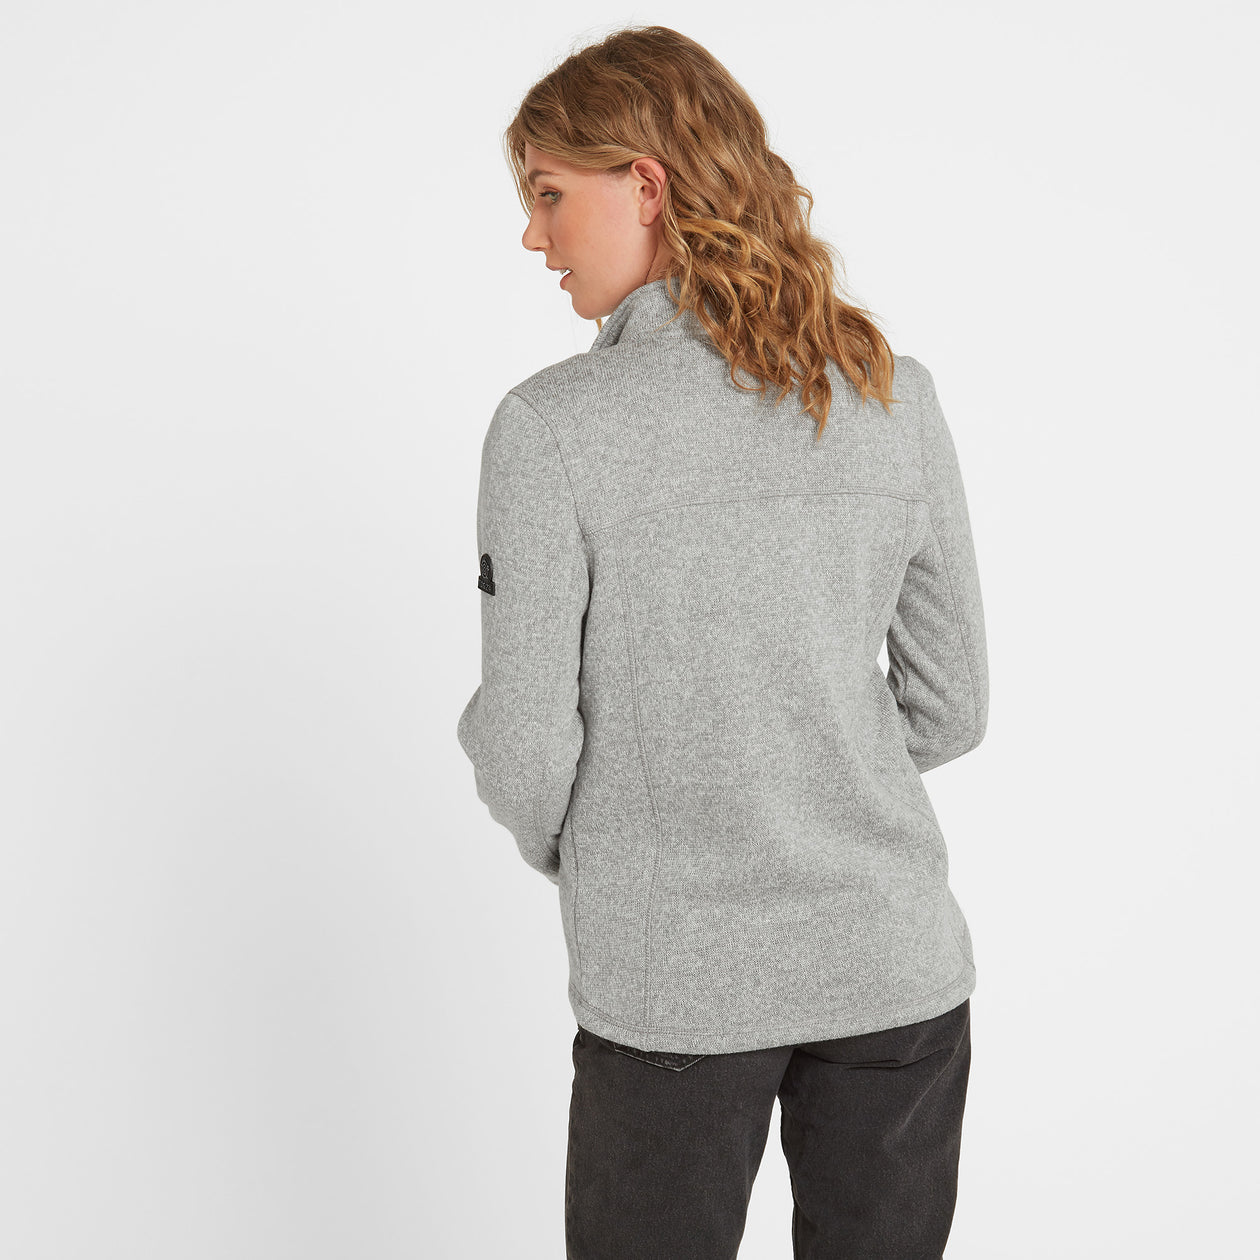 Charlton Womens Knitlook Fleece Jacket - Light Grey Marl image 4